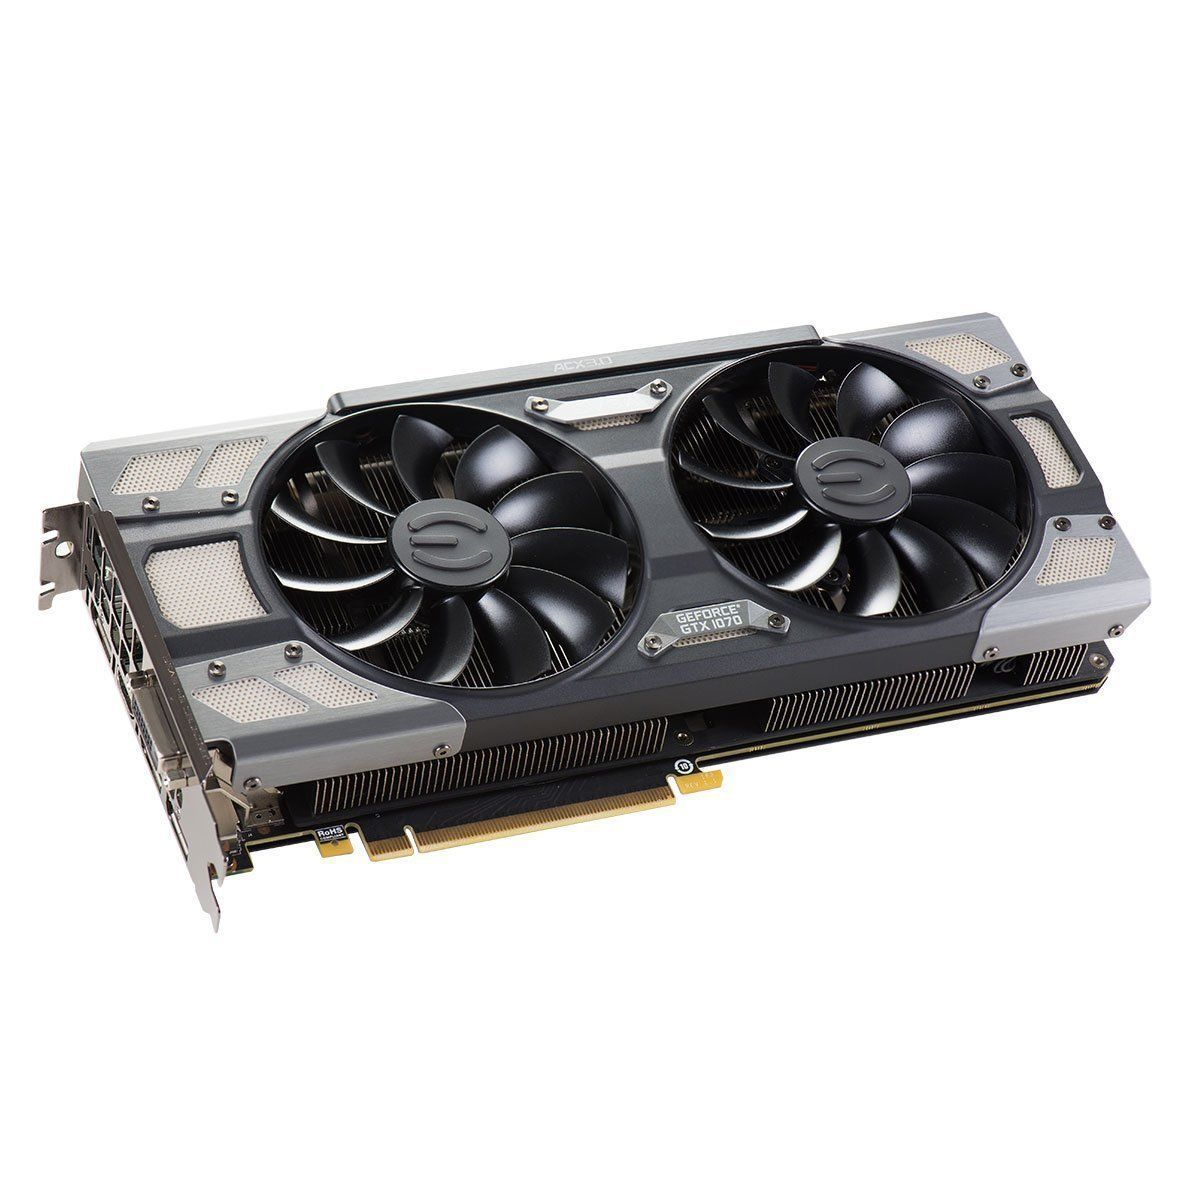 EVGA 08G-P4-5173-KR GeForce GTX 1070 SC GAMING ACX 3.0 Black Edition 8GB GDDR5 LED DX12 OSD Support (PXOC) Video Card